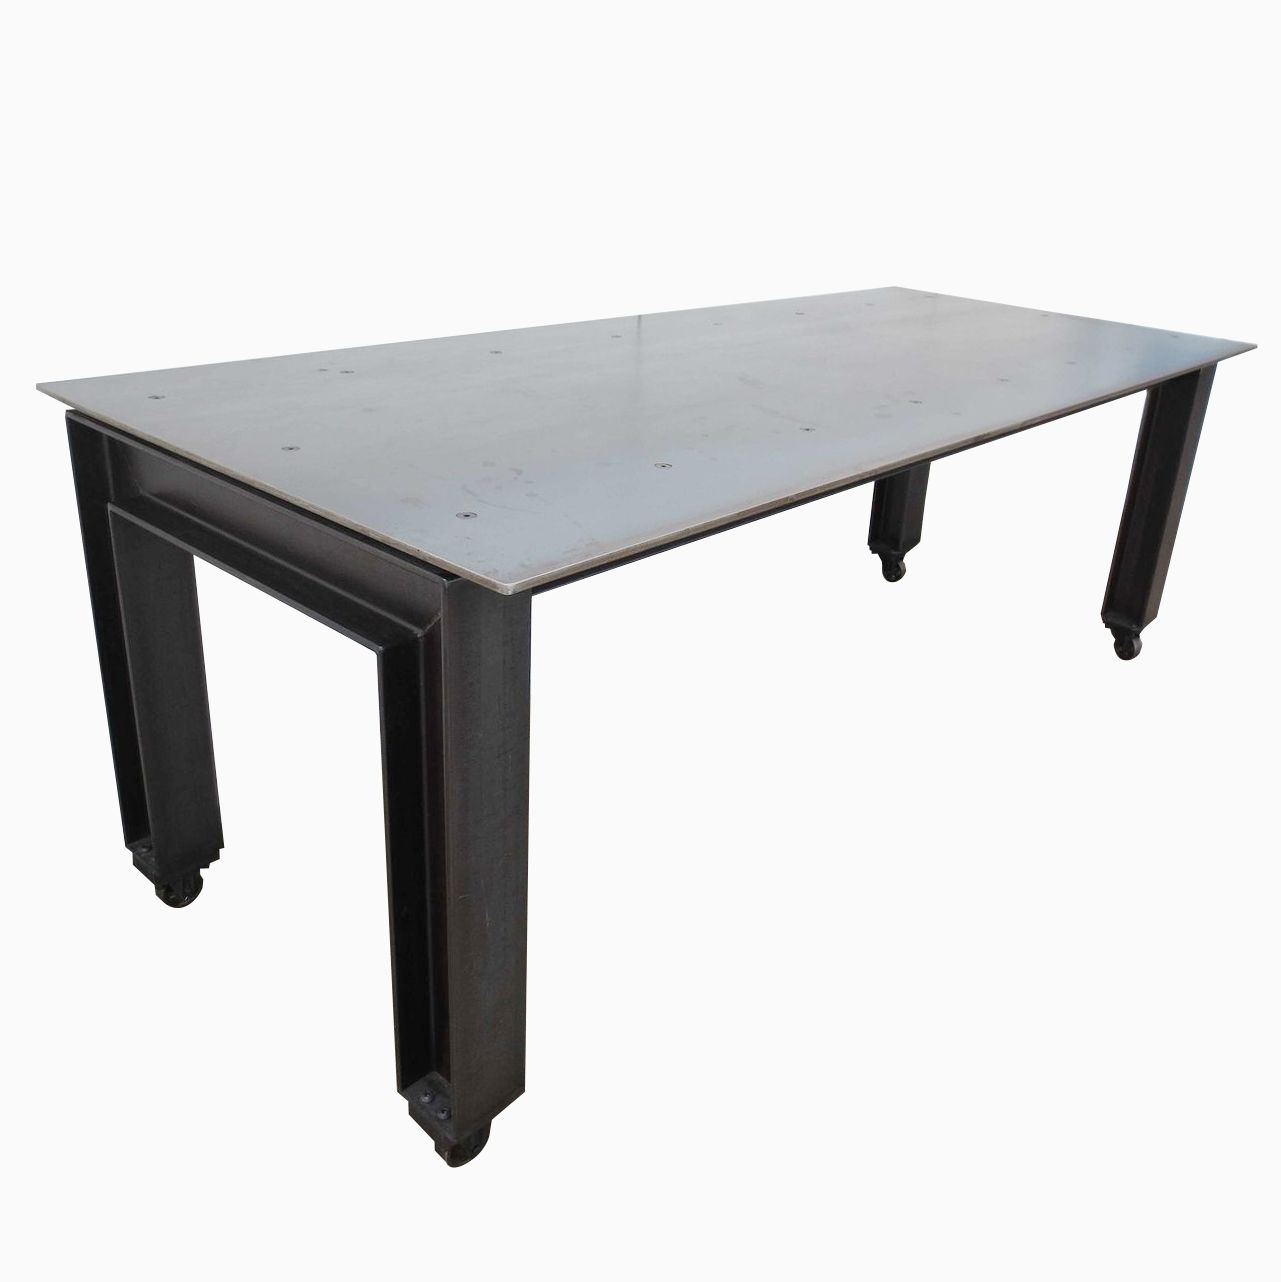 Hand Made Metal Industrial Modern Plate Steel Table by  : 139767933634 from www.custommade.com size 1281 x 1282 jpeg 47kB